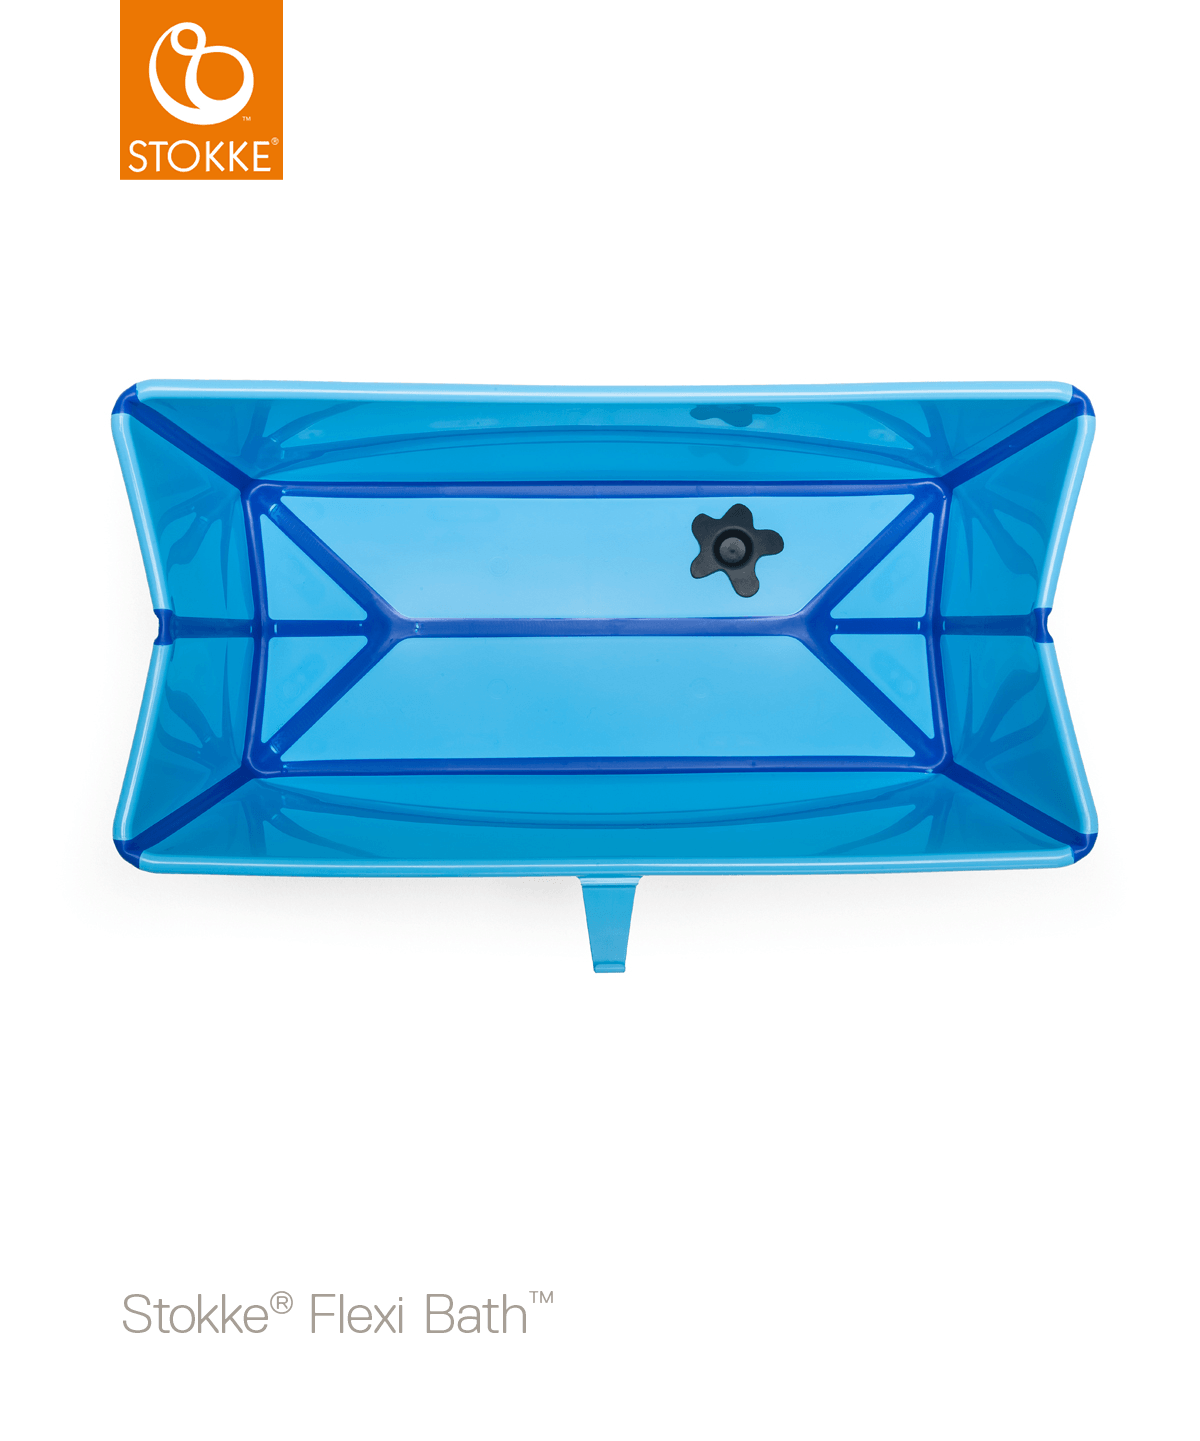 Stokke Flexi Bath blue